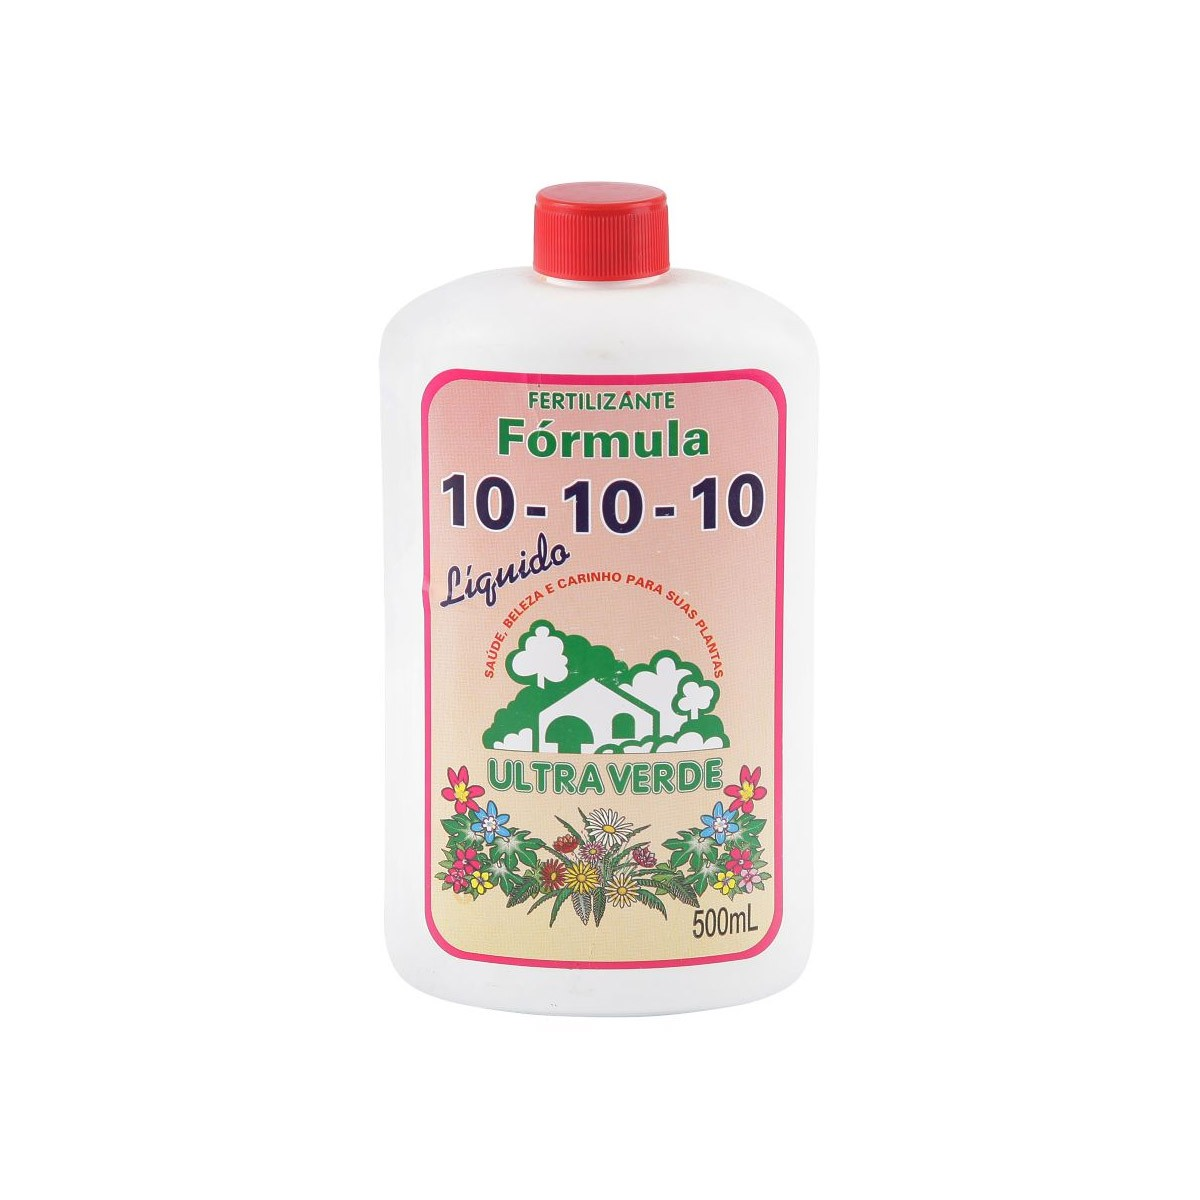 Fertilizante N. P. K 10-10-10 - 500ml - ULTRA VERDE